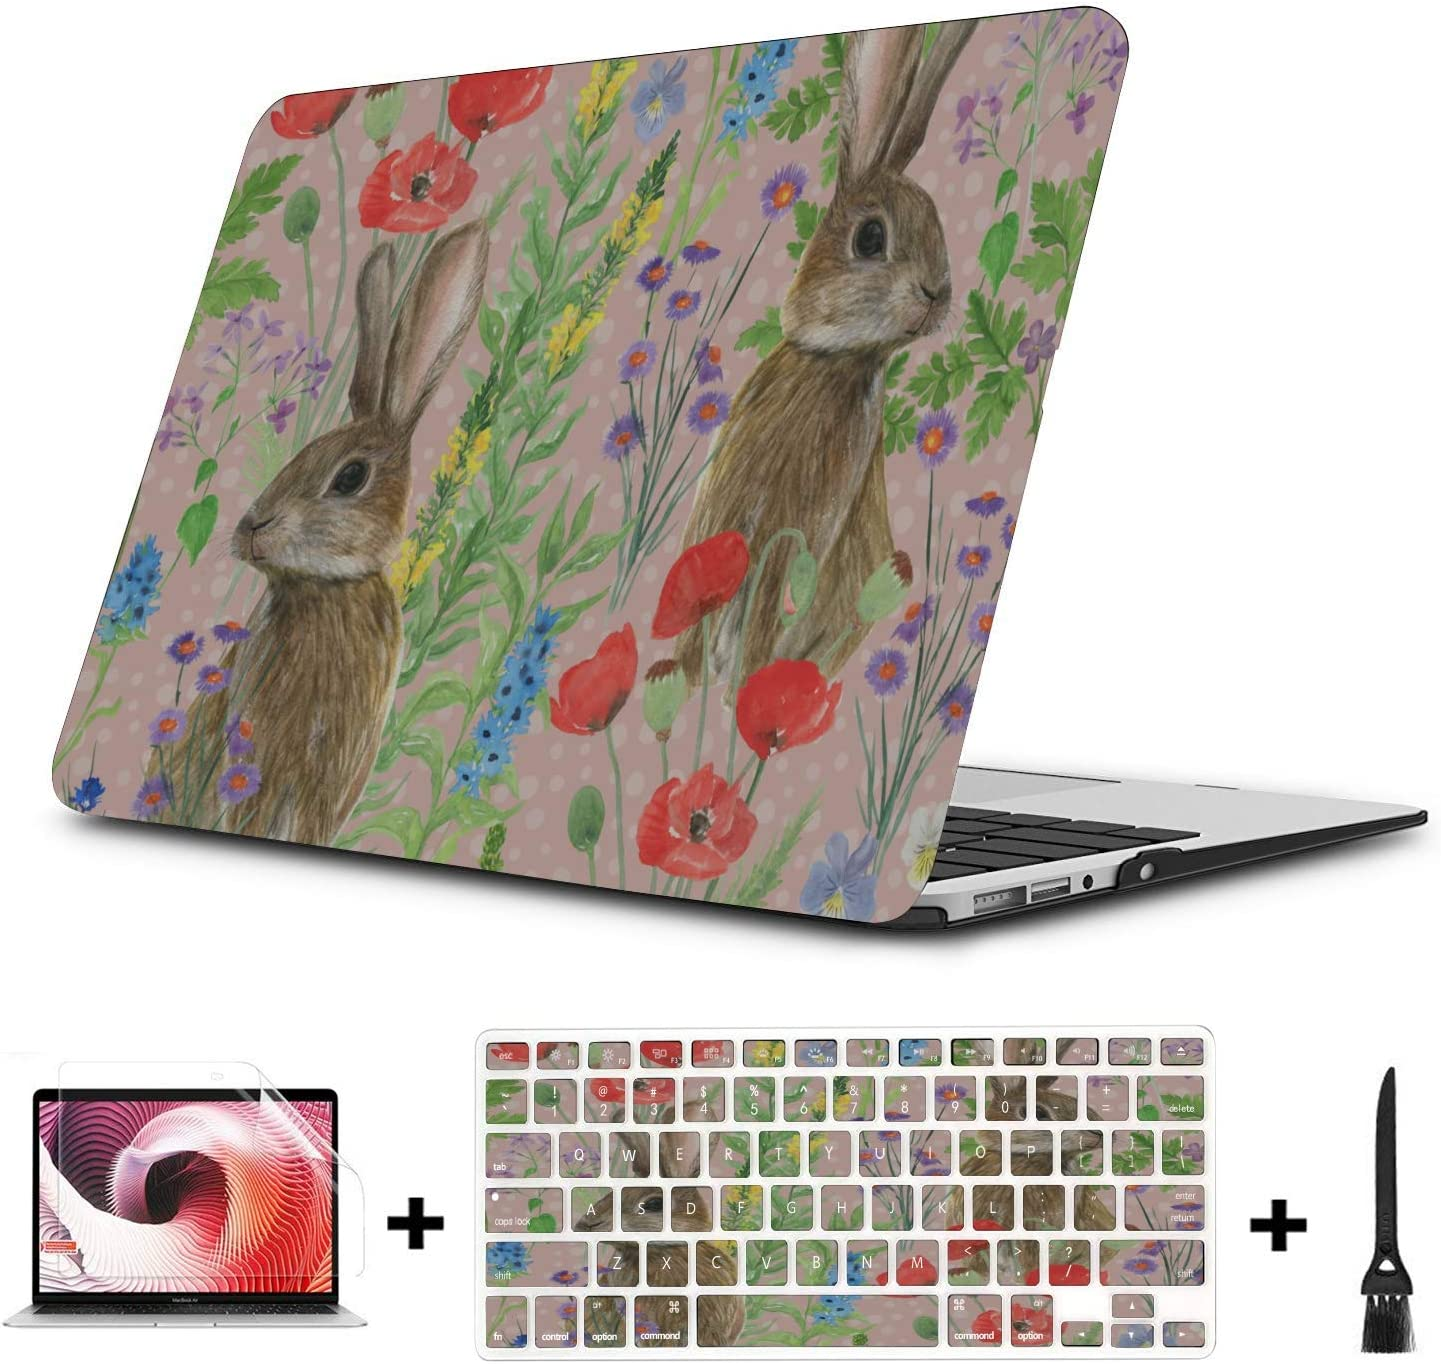 A1534 MacBook Case Sophisticated Cute Cartoon Painting Plastic Hard Shell Compatible Mac Air 11 Pro 13 15 MacBook Pro 15 Accessories Protection for MacBook 2016-2019 Version